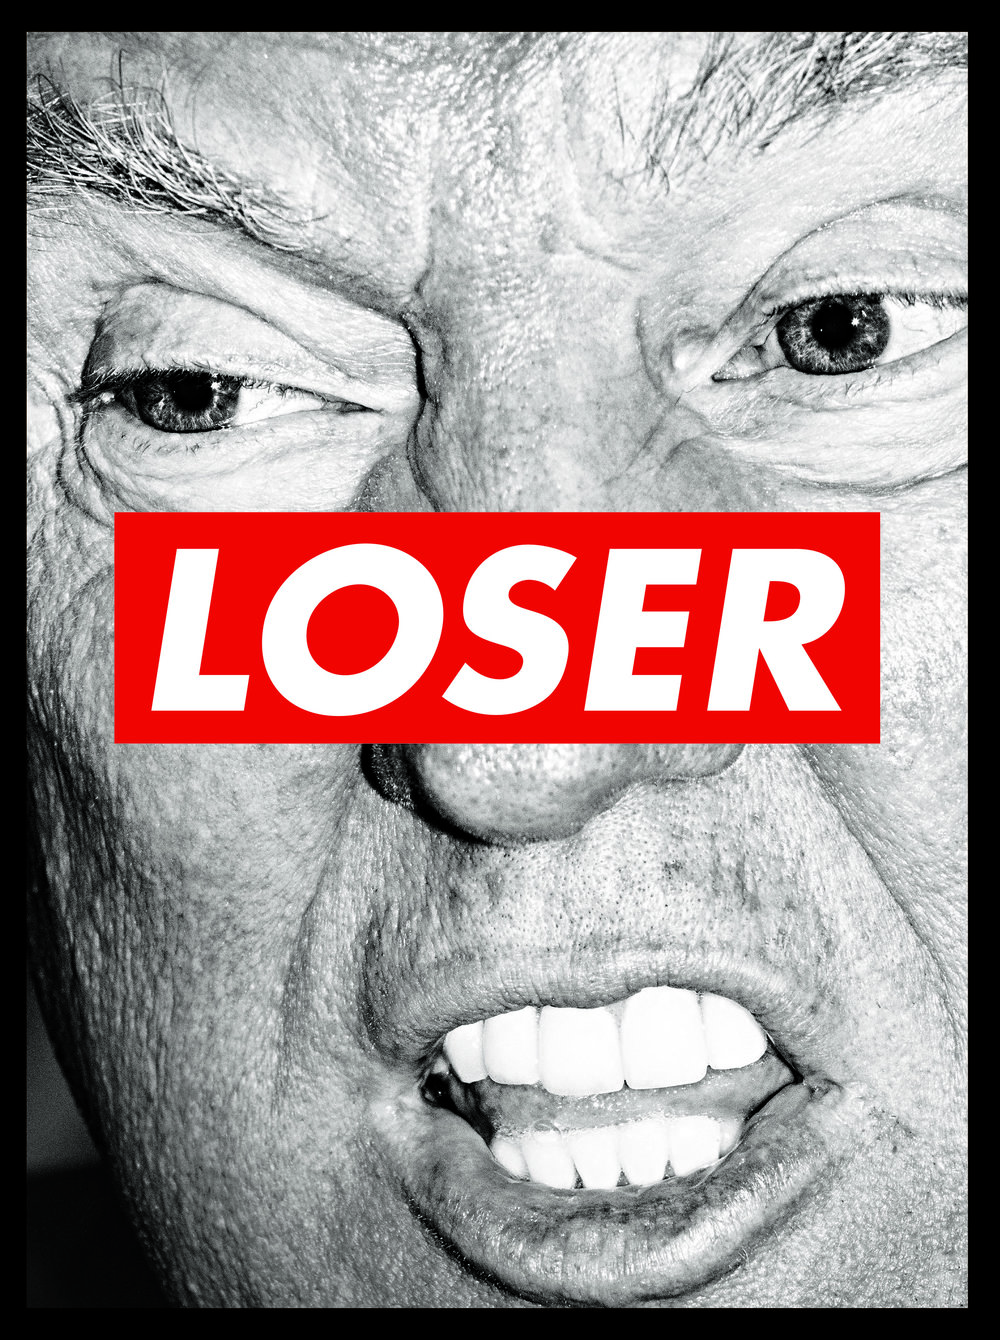 © Mark Peterson / Art by Barbara Kruger. Oct. 31, 2016 Loser. Cover, October 2016. Art by Barbara Kruger made with a photograph of Donald Trump by Mark Peterson on the 2016 campaign trail. Design Director: Thomas Alberty Photo Director: Jody Quon Publication: New York